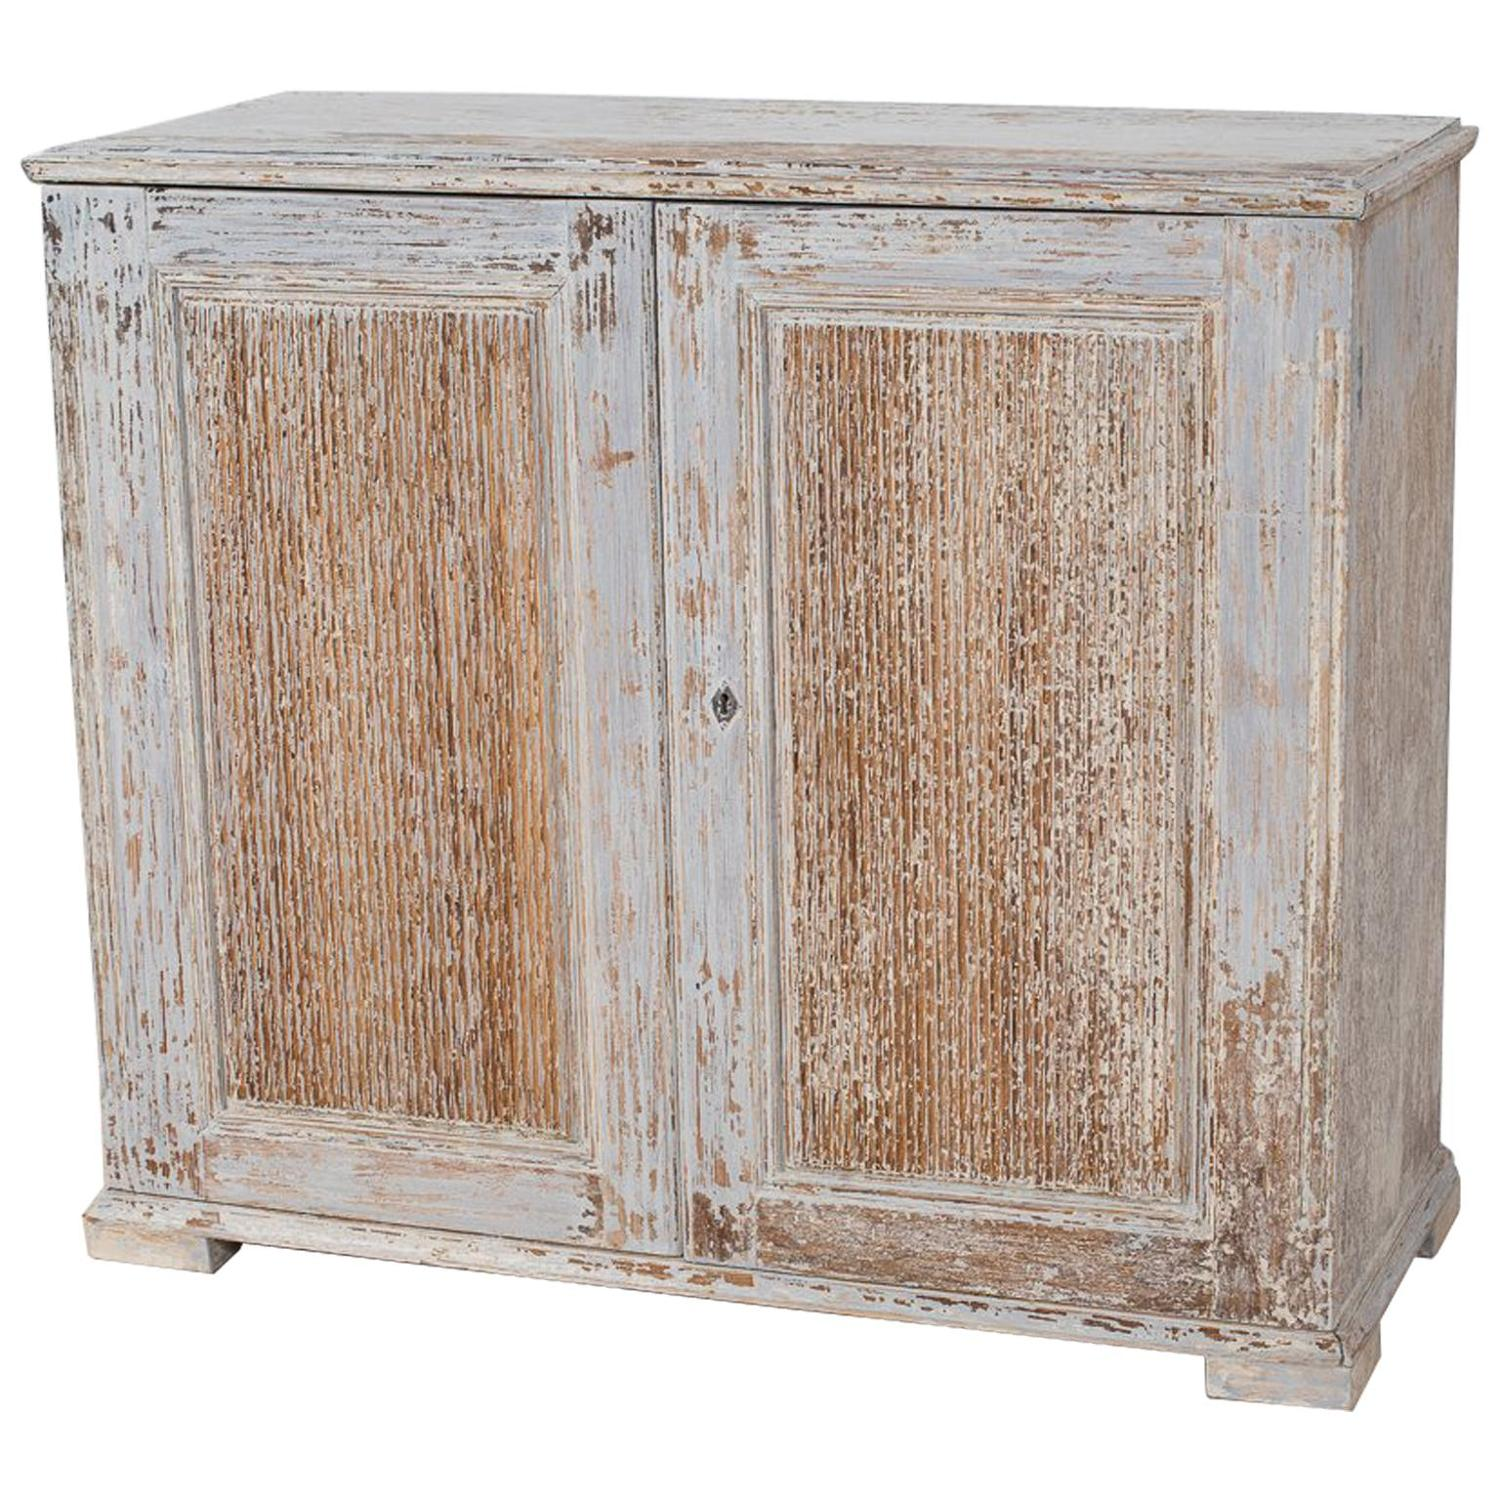 Swedish Period Gustavian Sideboard in Original Pale Blue Paint